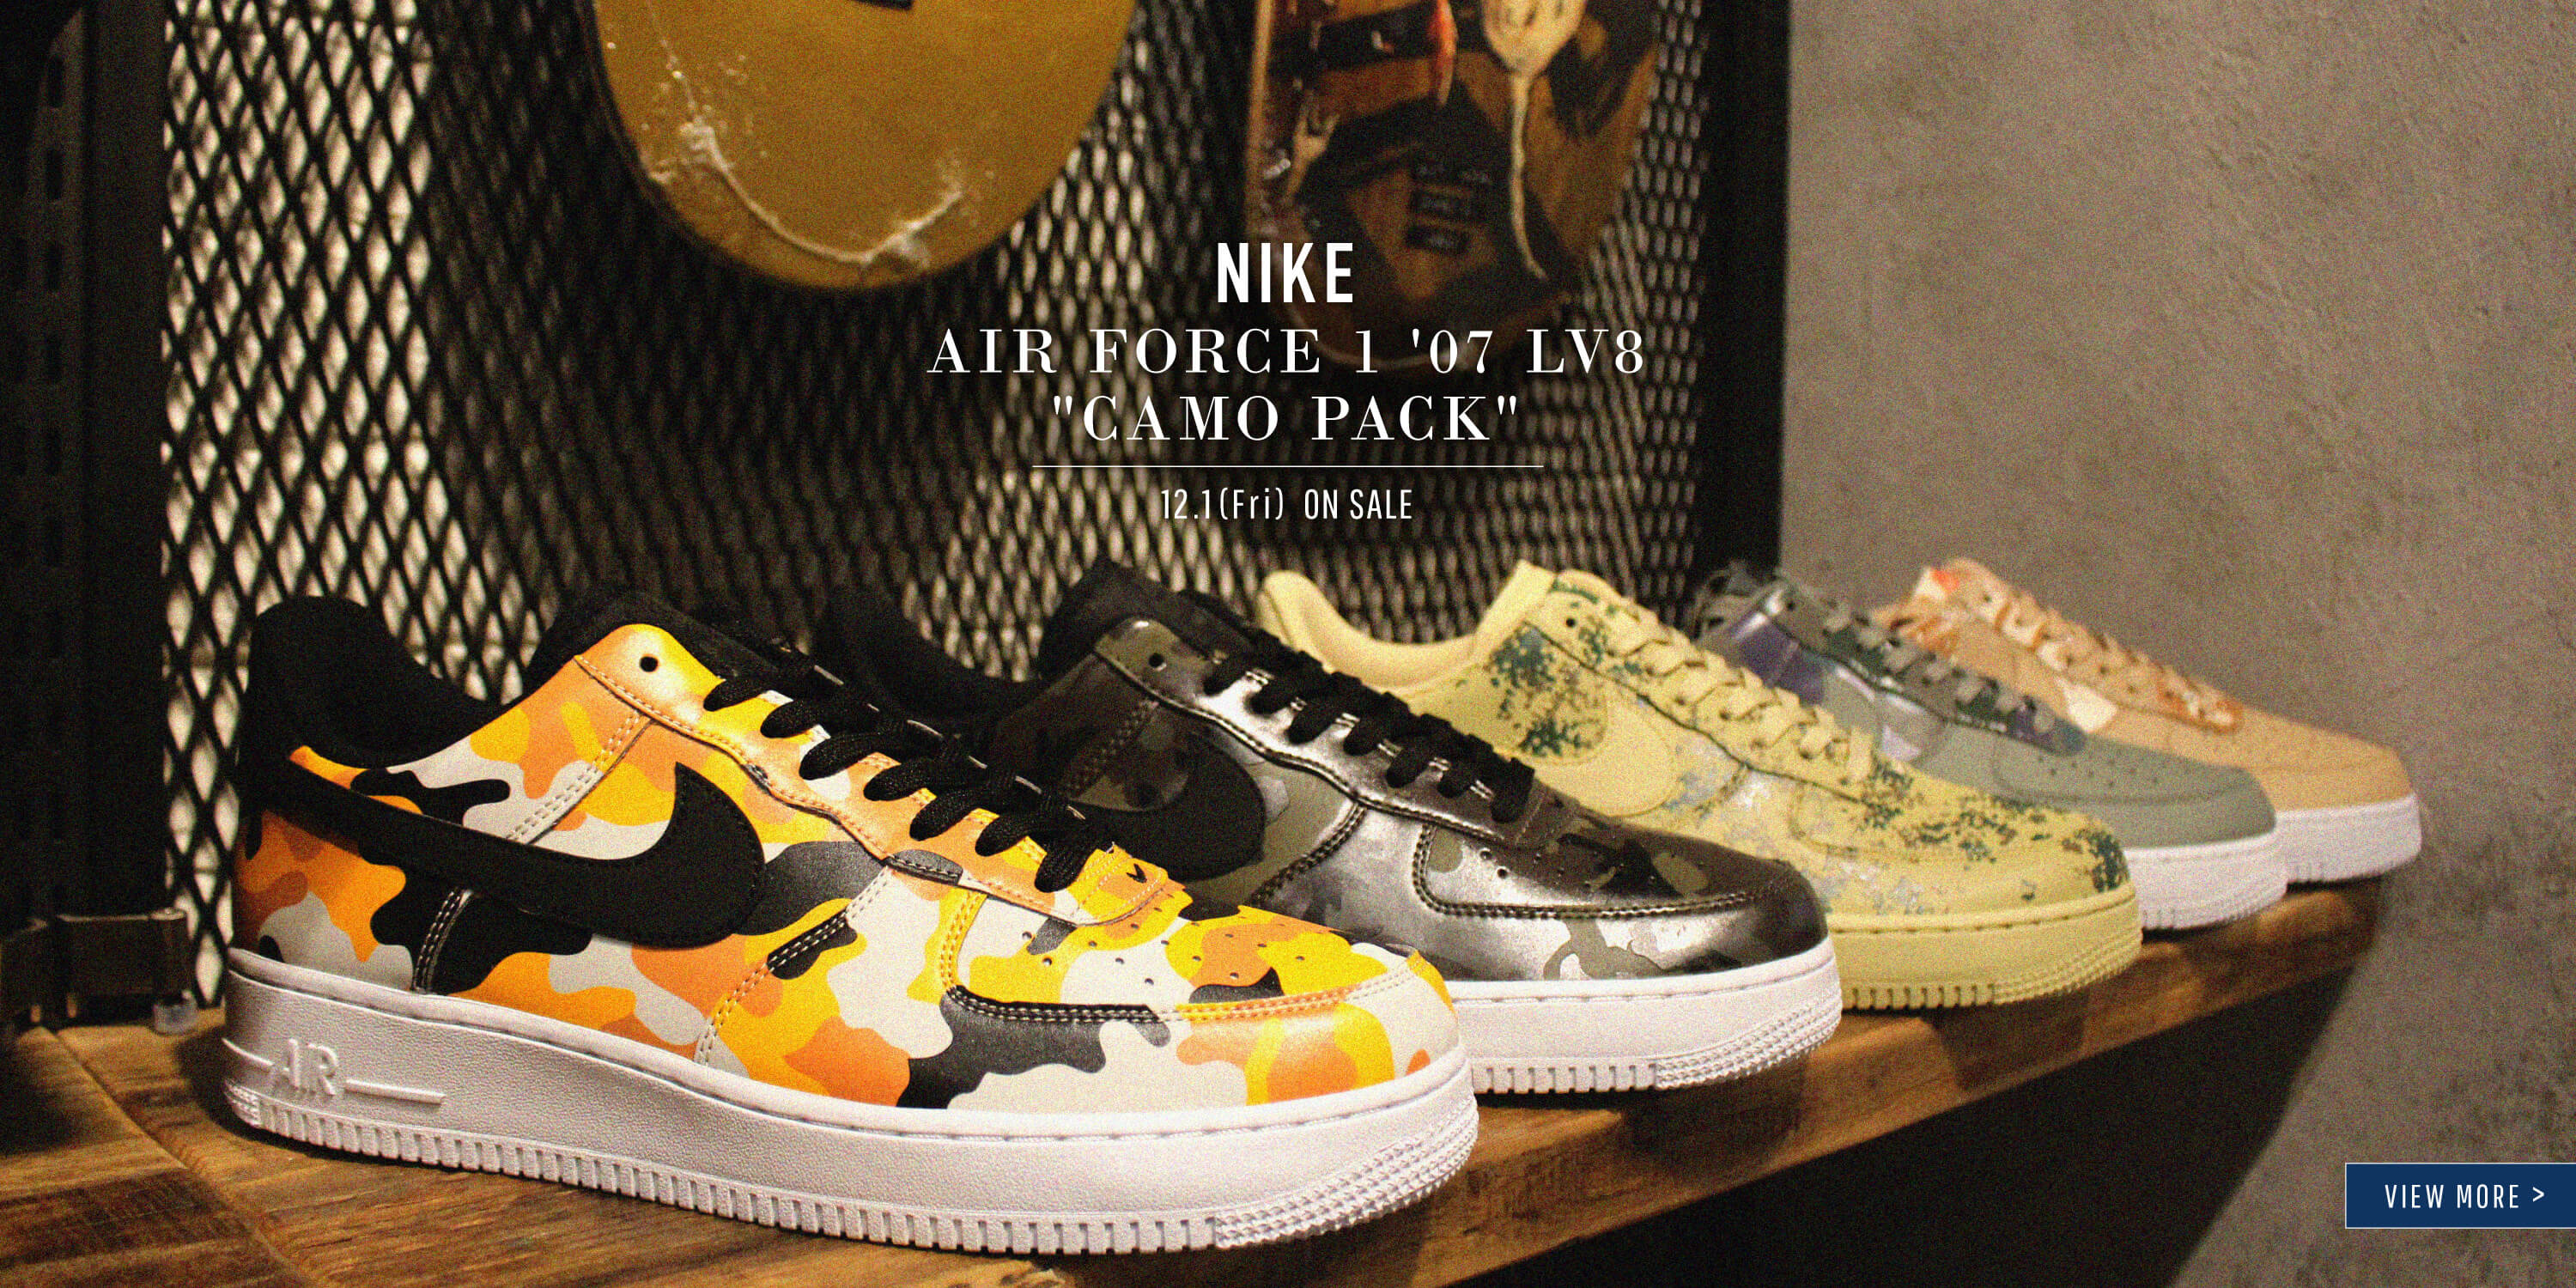 AIR FORCE 1 CAMO PACK